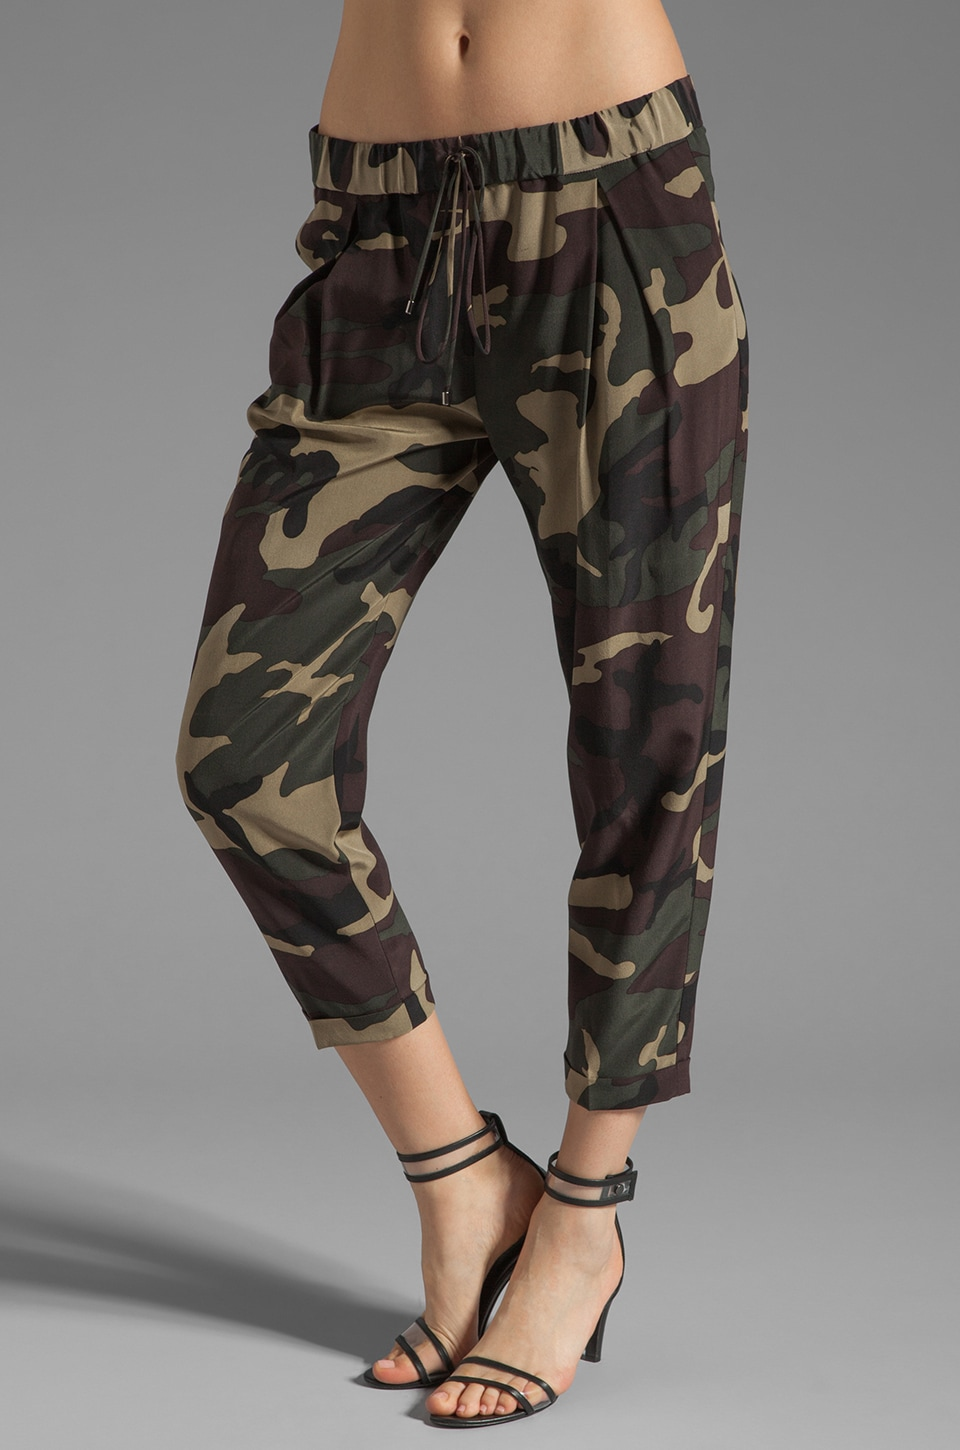 Haute Hippie Silk Pant in Fatigue Camo